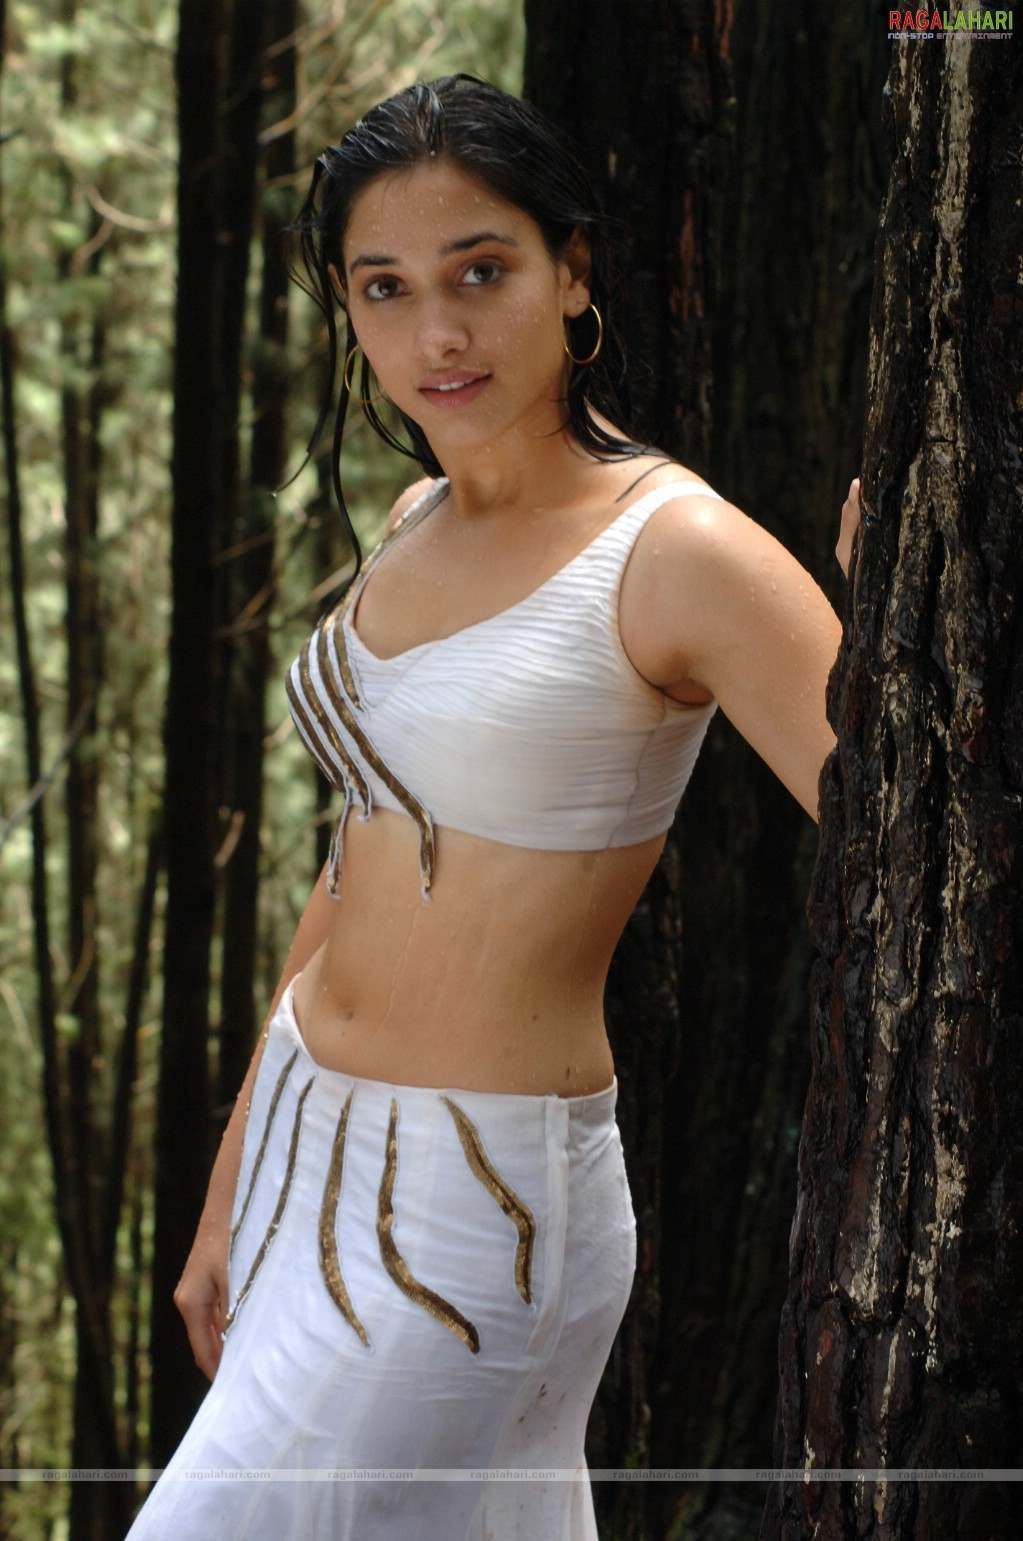 tamanna navel hot | tamanna bhatia | pinterest | navel and bollywood